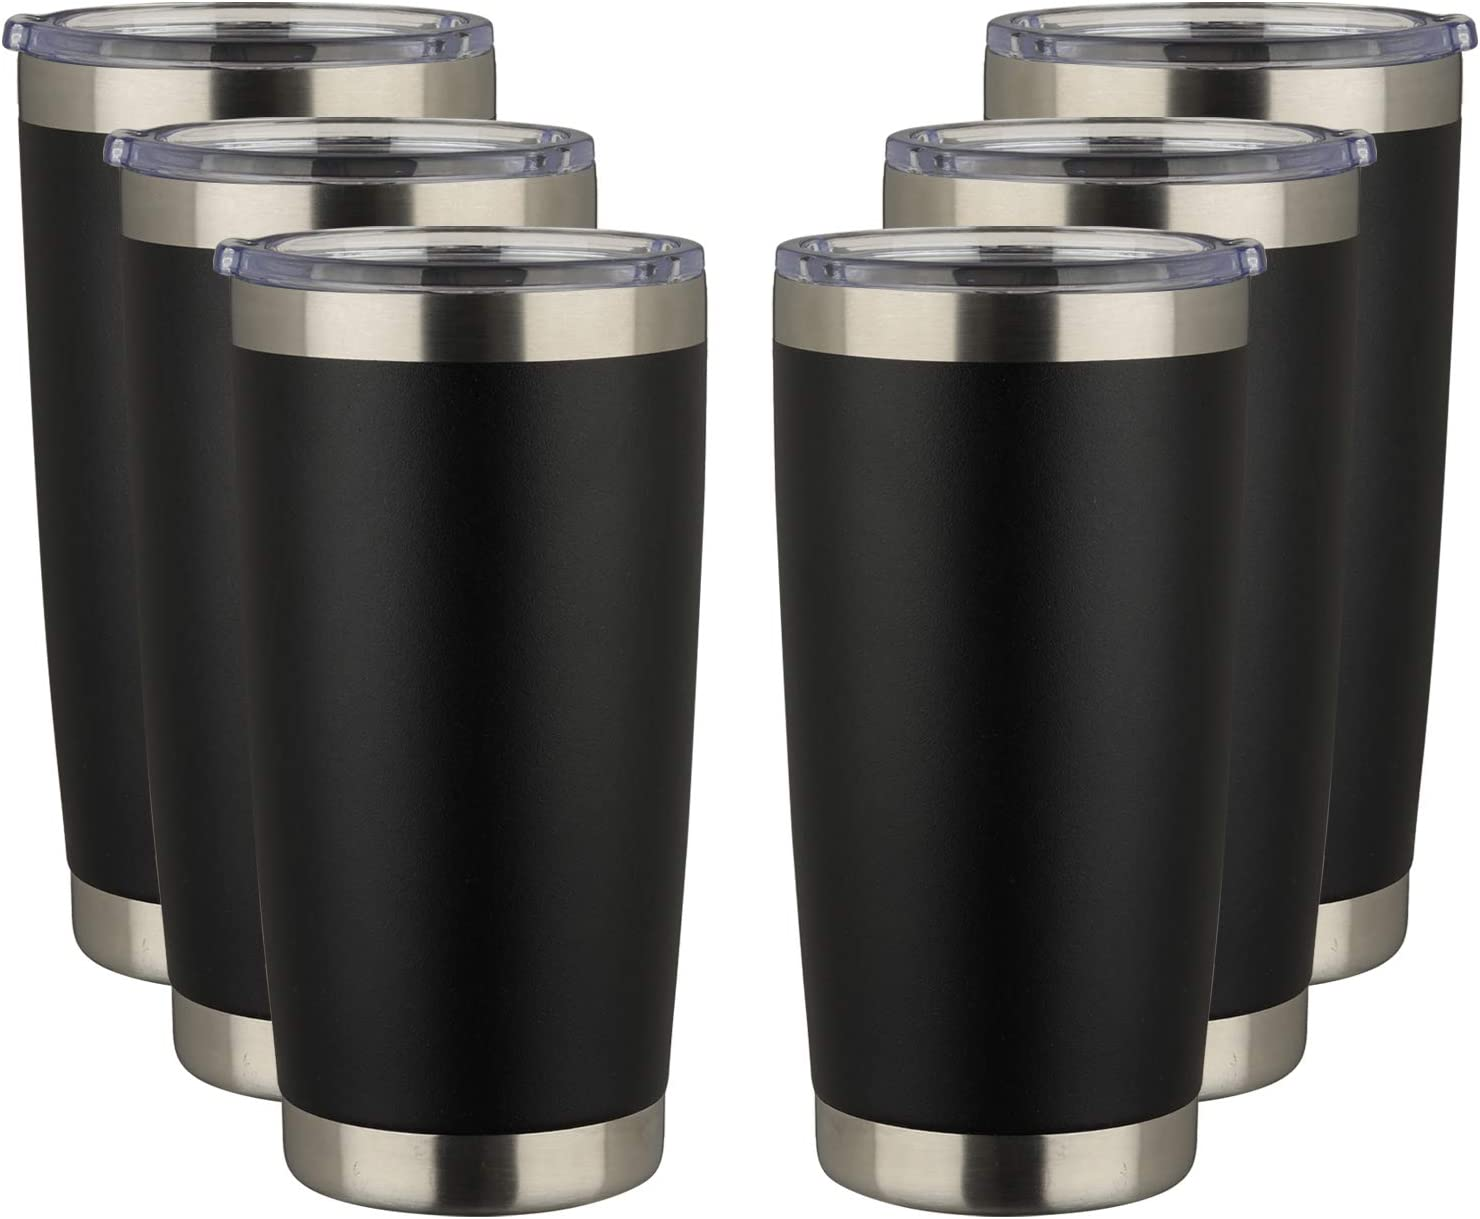 Powder Coated Thermal Cup for Cold Drinks /& Hot Beverage MUCHENGHY 20oz Insulated Tumbler Bulk Stainless Steel Cup 6 Pack Black, 6 Double Wall Vacuum Travel Coffee Mug with Lid and Straw